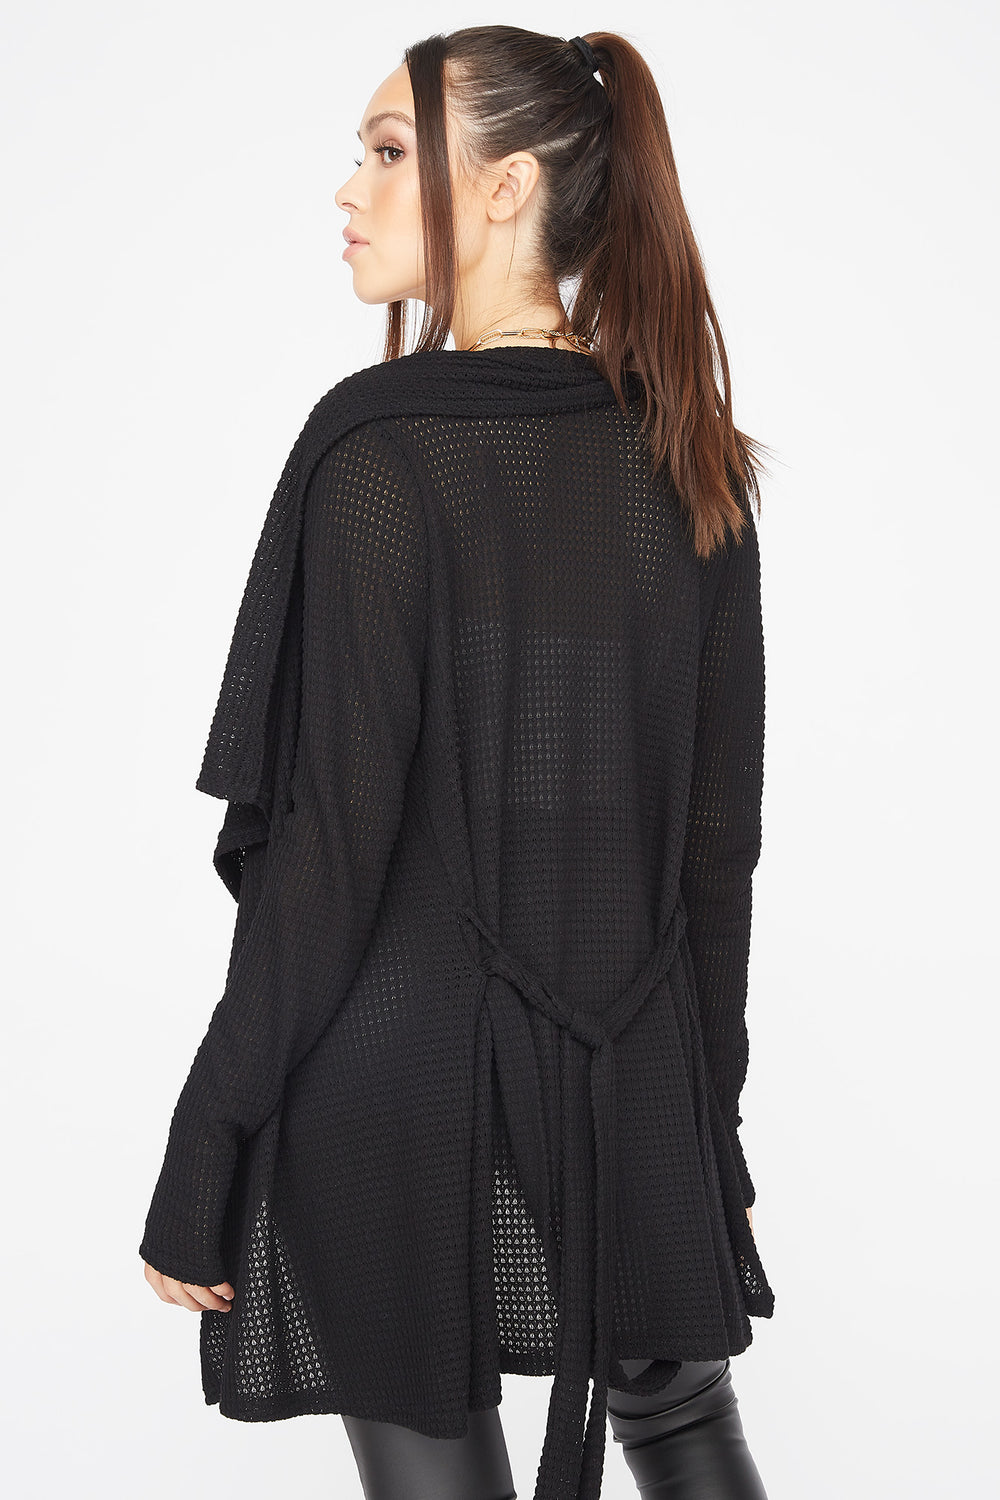 Knit Waterfall Belted Cardigan Black